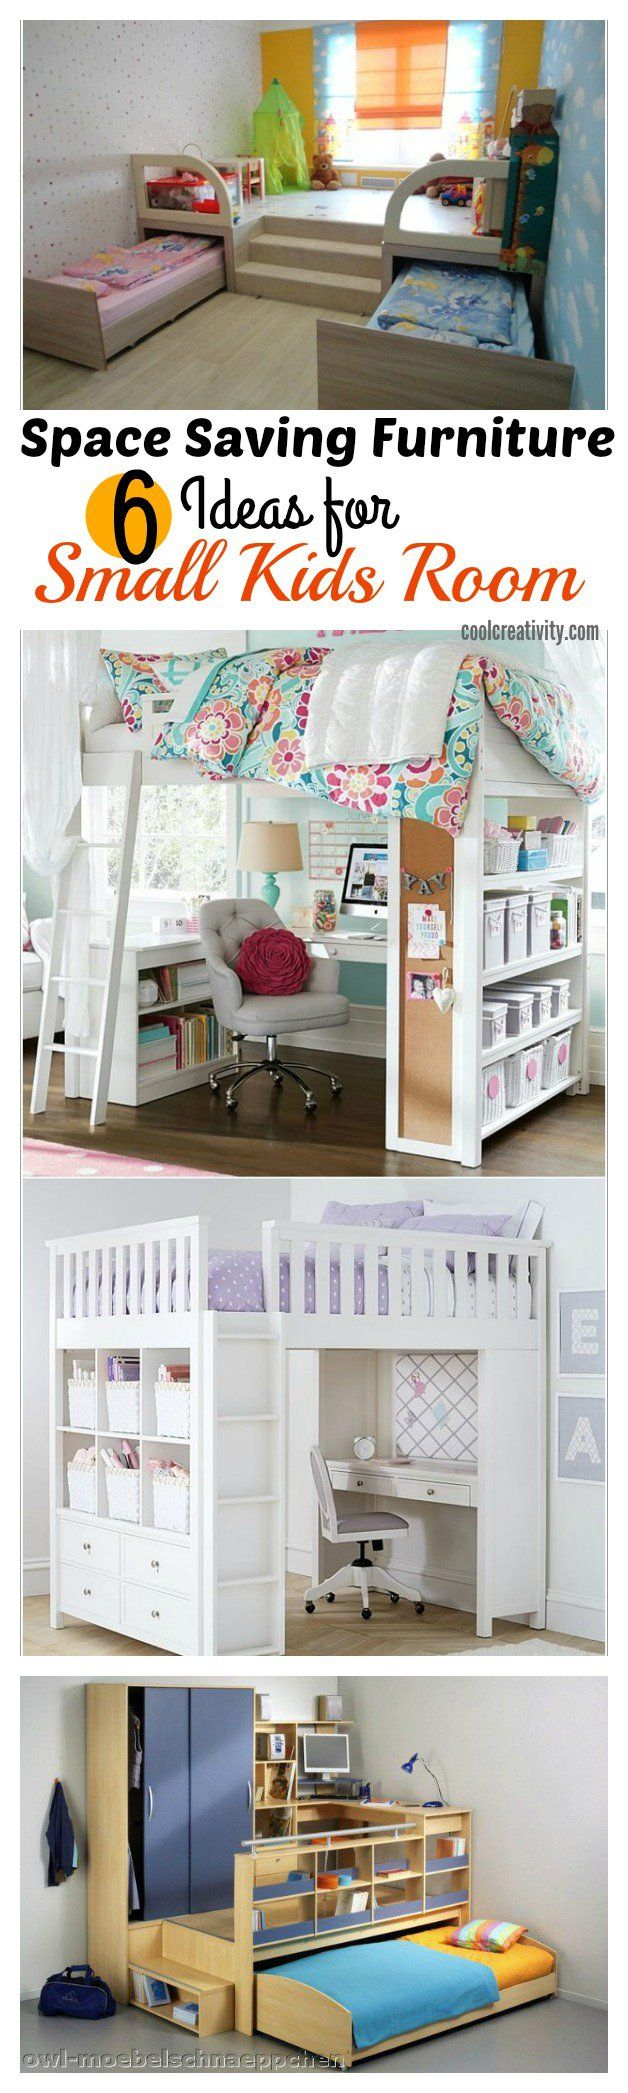 space saving furniture ideas for small kids room furniture ideas